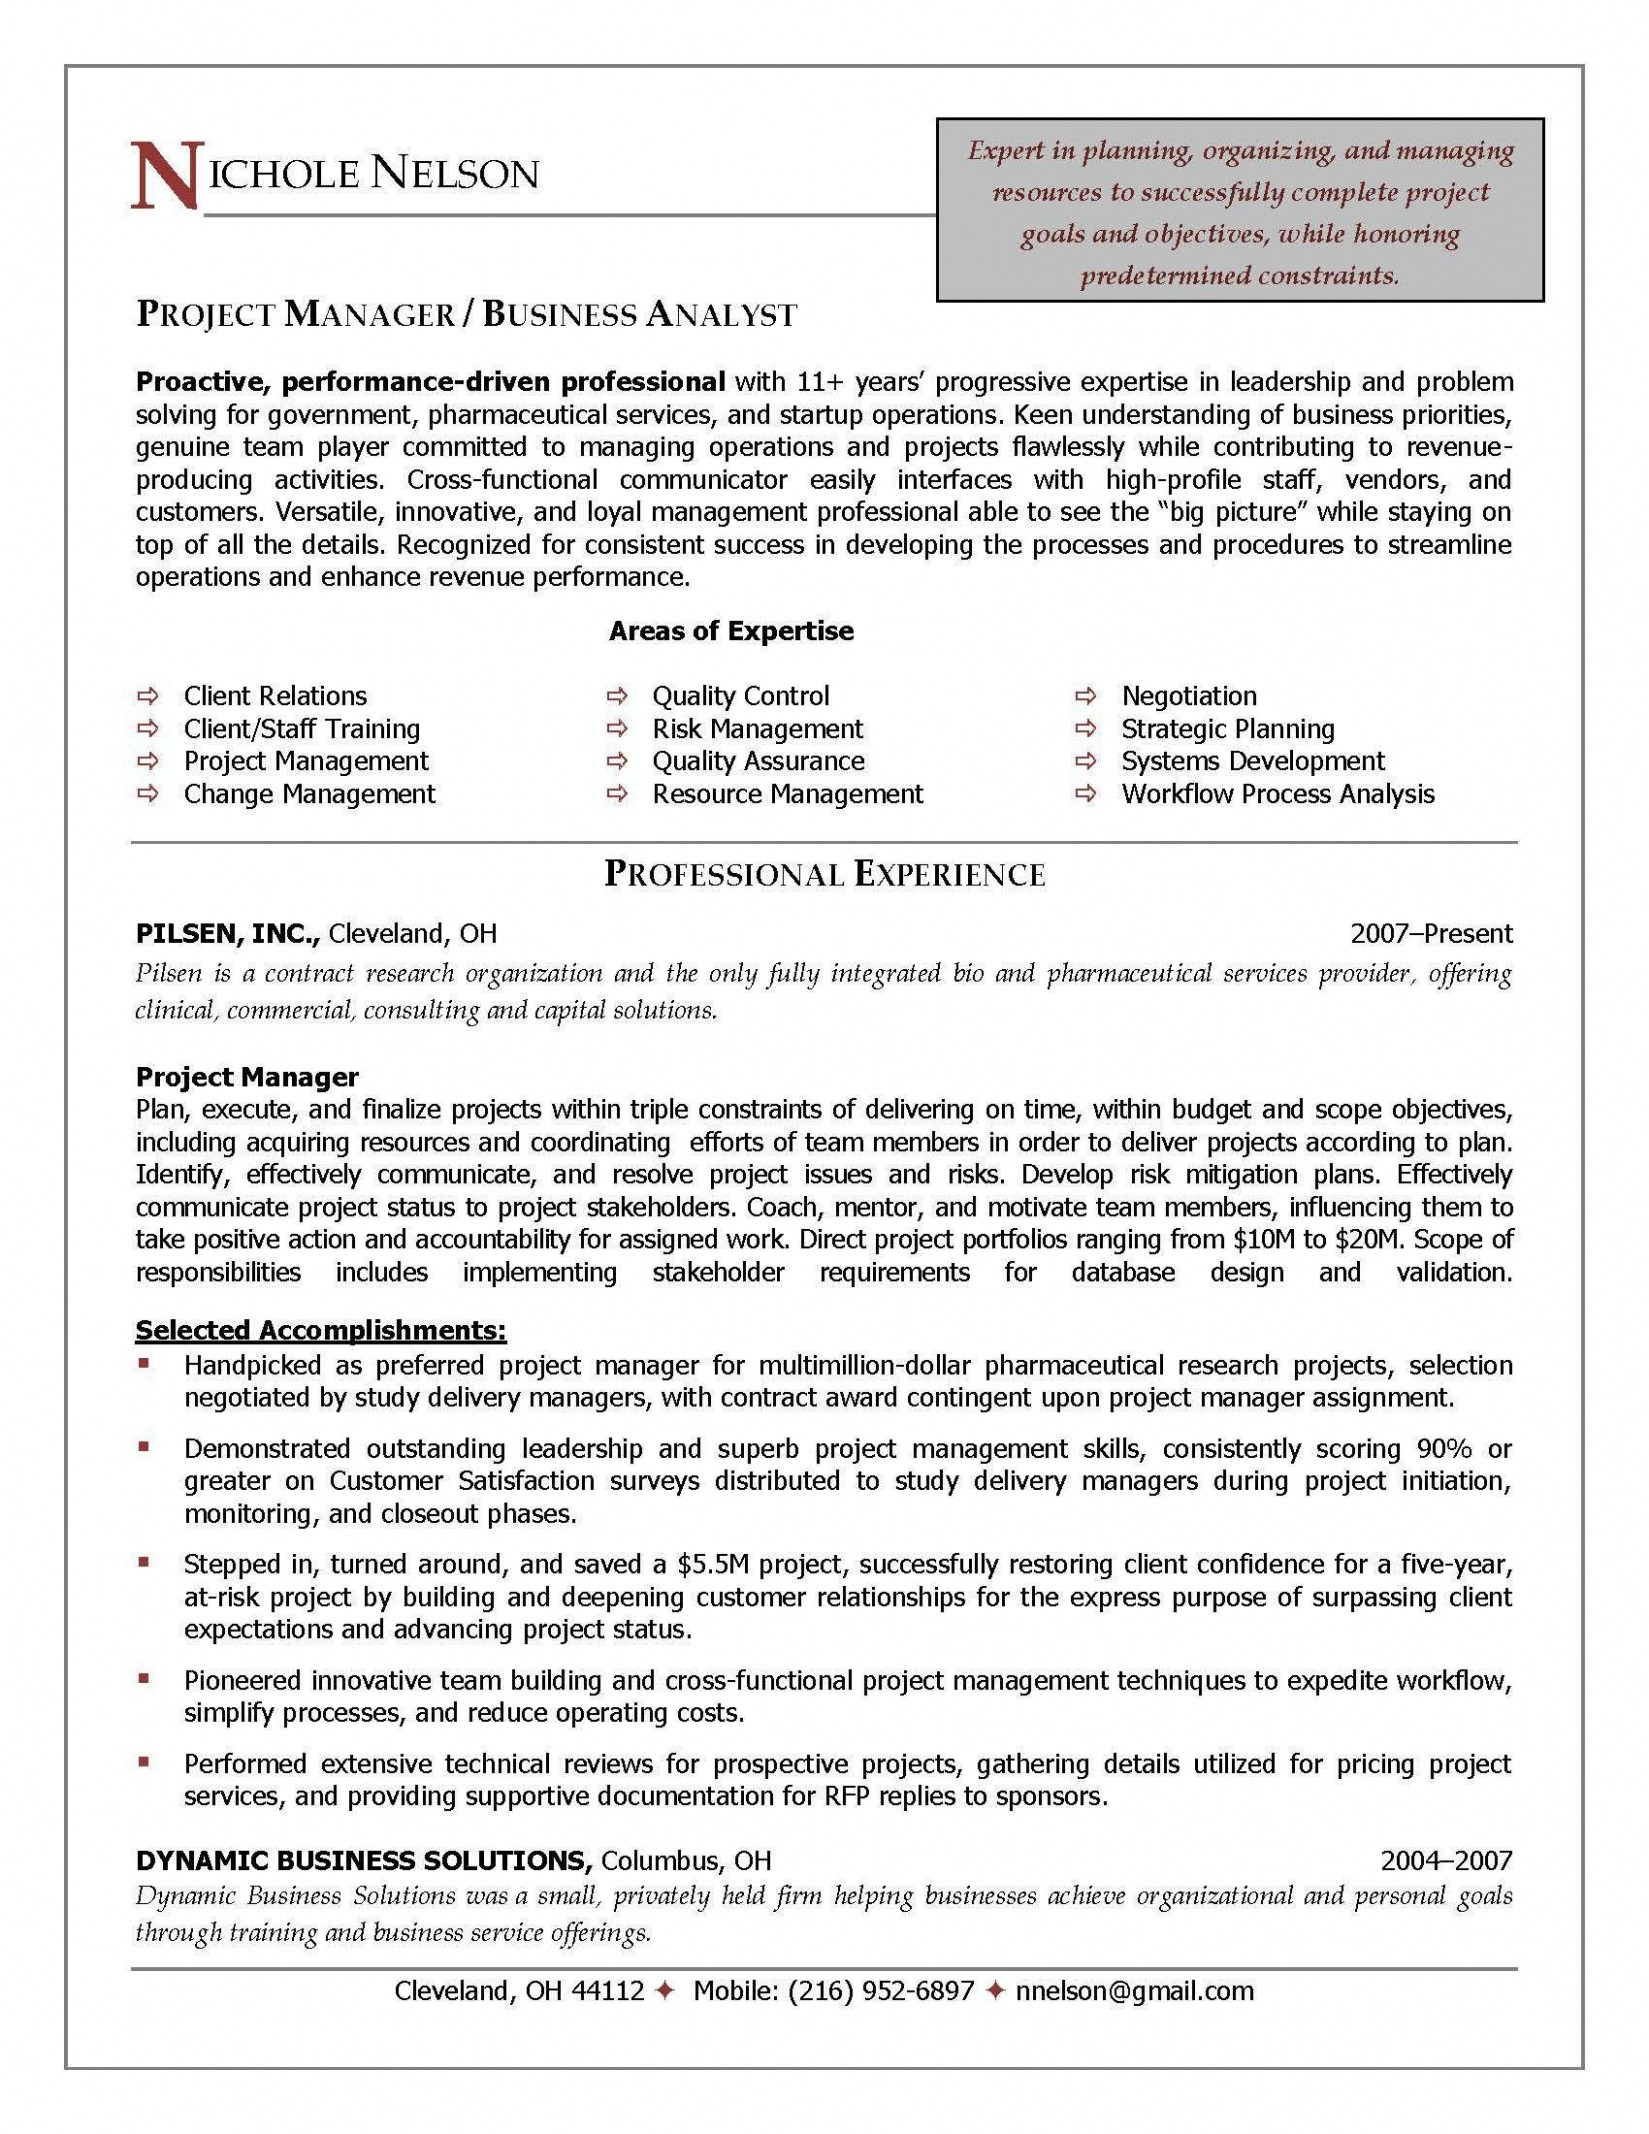 Qa Engineer Resume - Quality Control Resume New Qa Engineer Resume Beautiful Quality